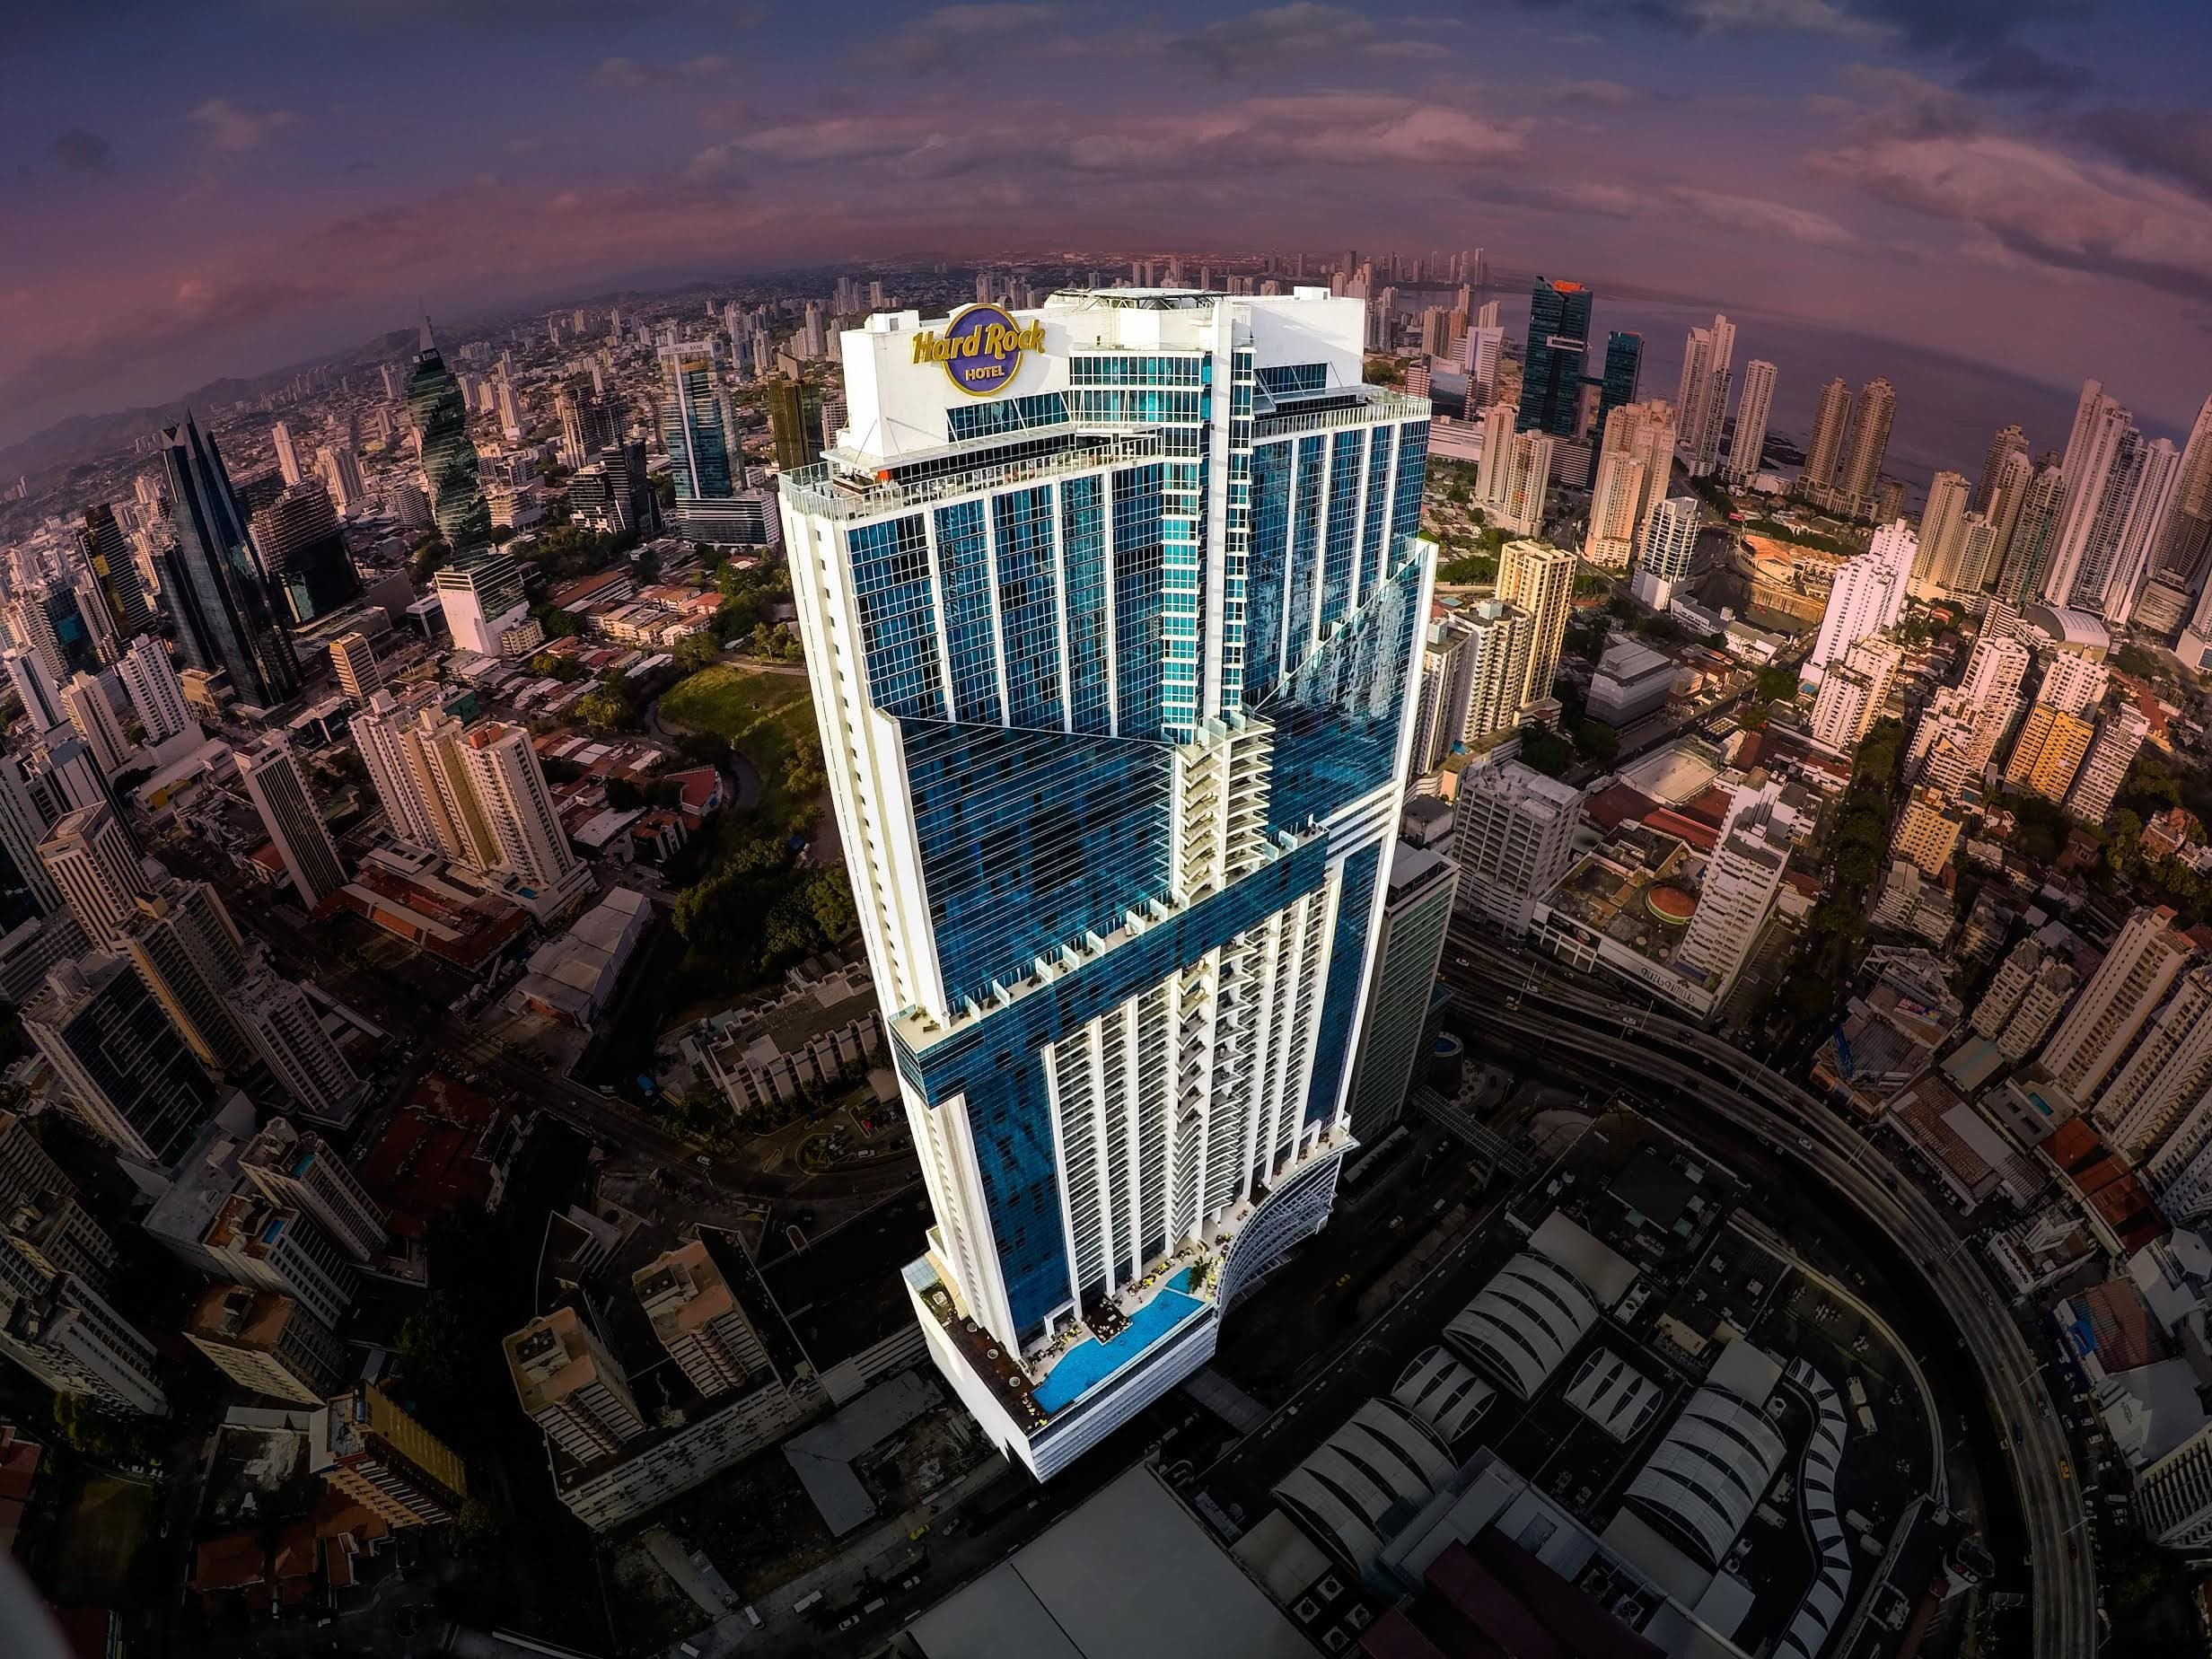 Panama's towering Hard Rock Hotel